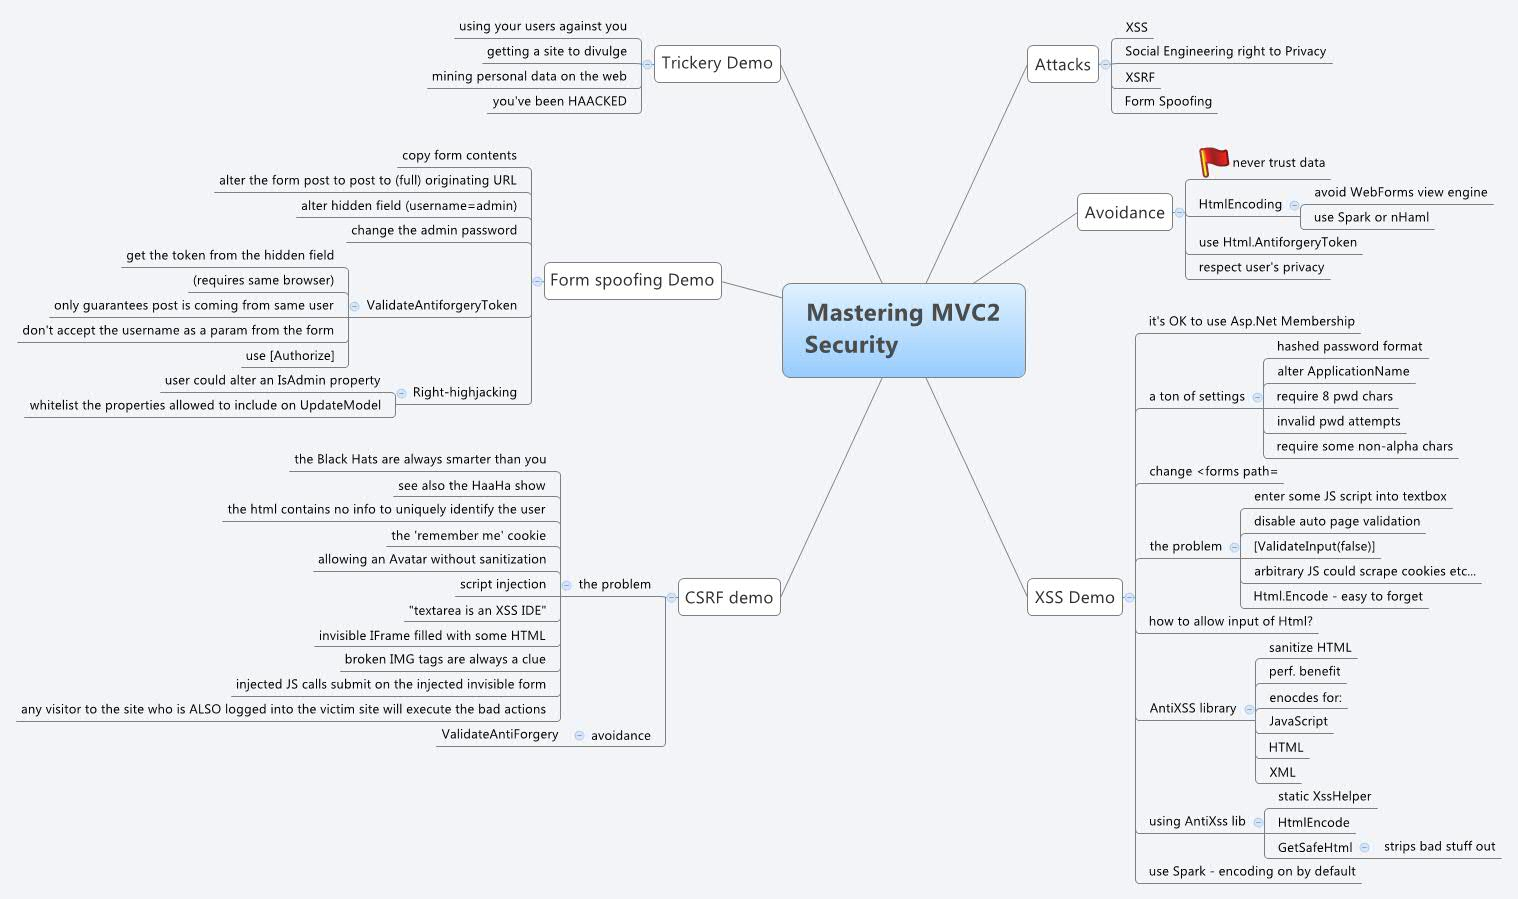 Mastering MVC2 Security - XMind - Mind Mapping Software